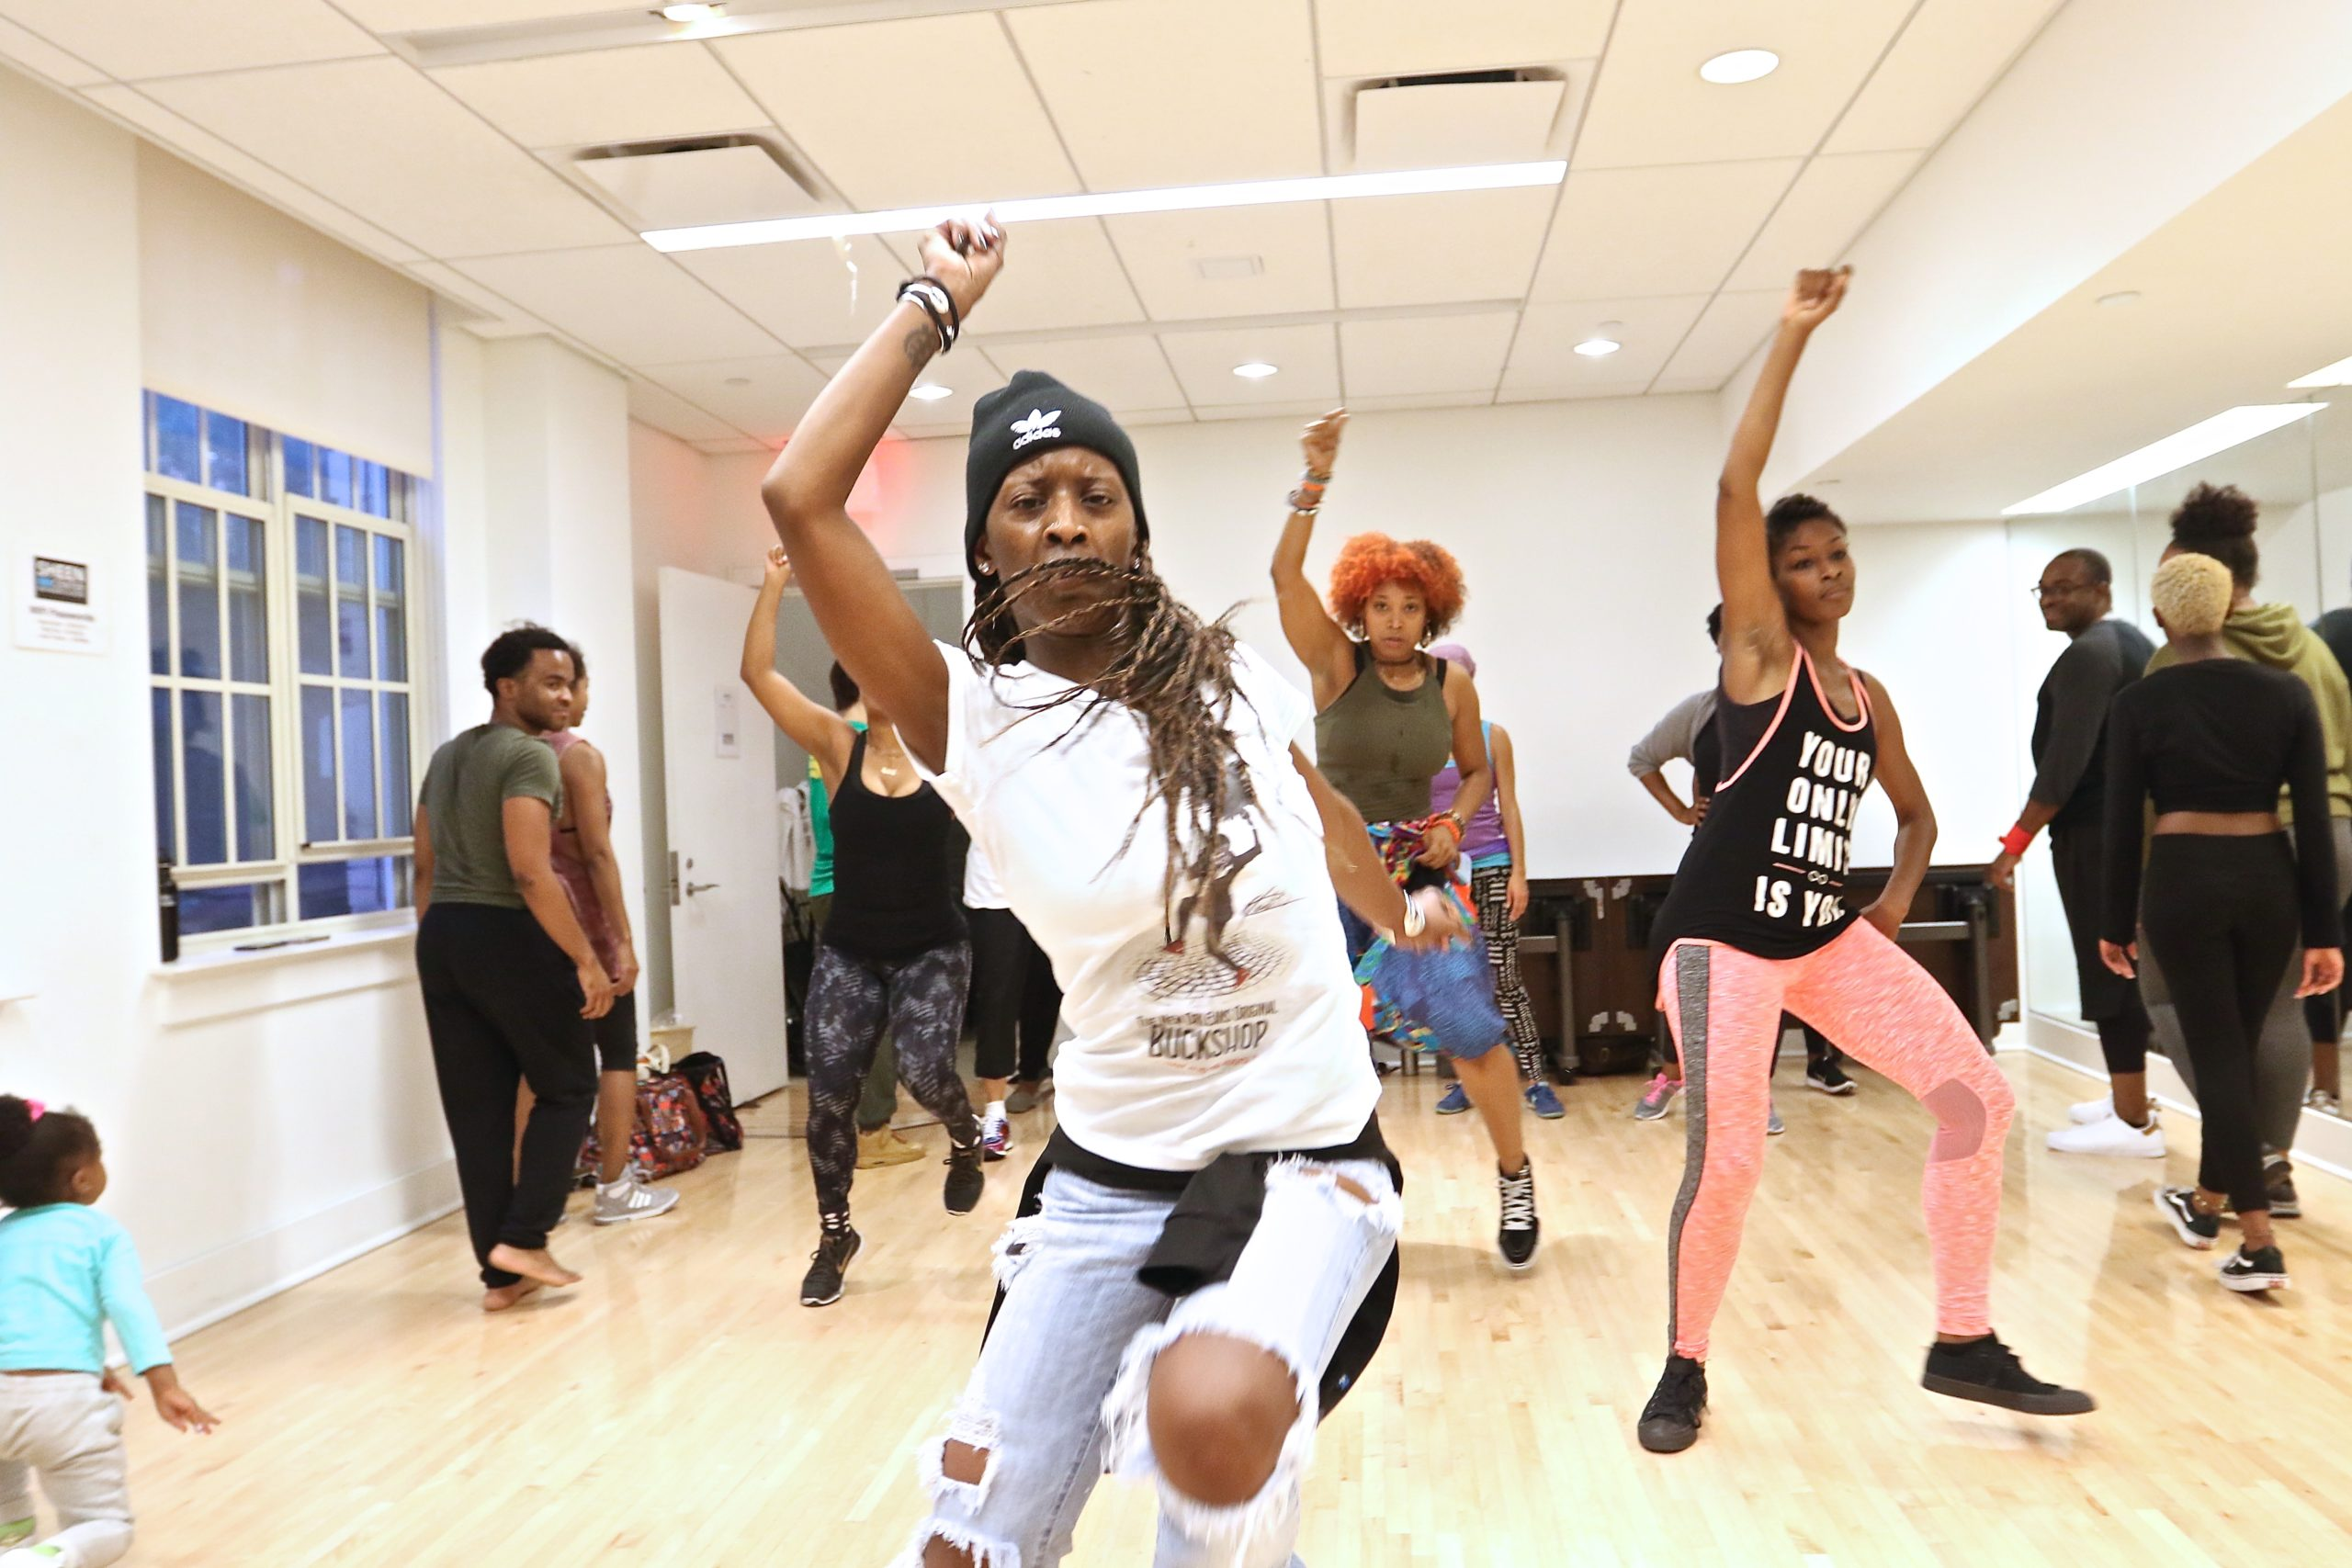 Michelle Gibson leads the New Orleans Original Buckshop workshop at The Sheen Center, East Village, NYC.